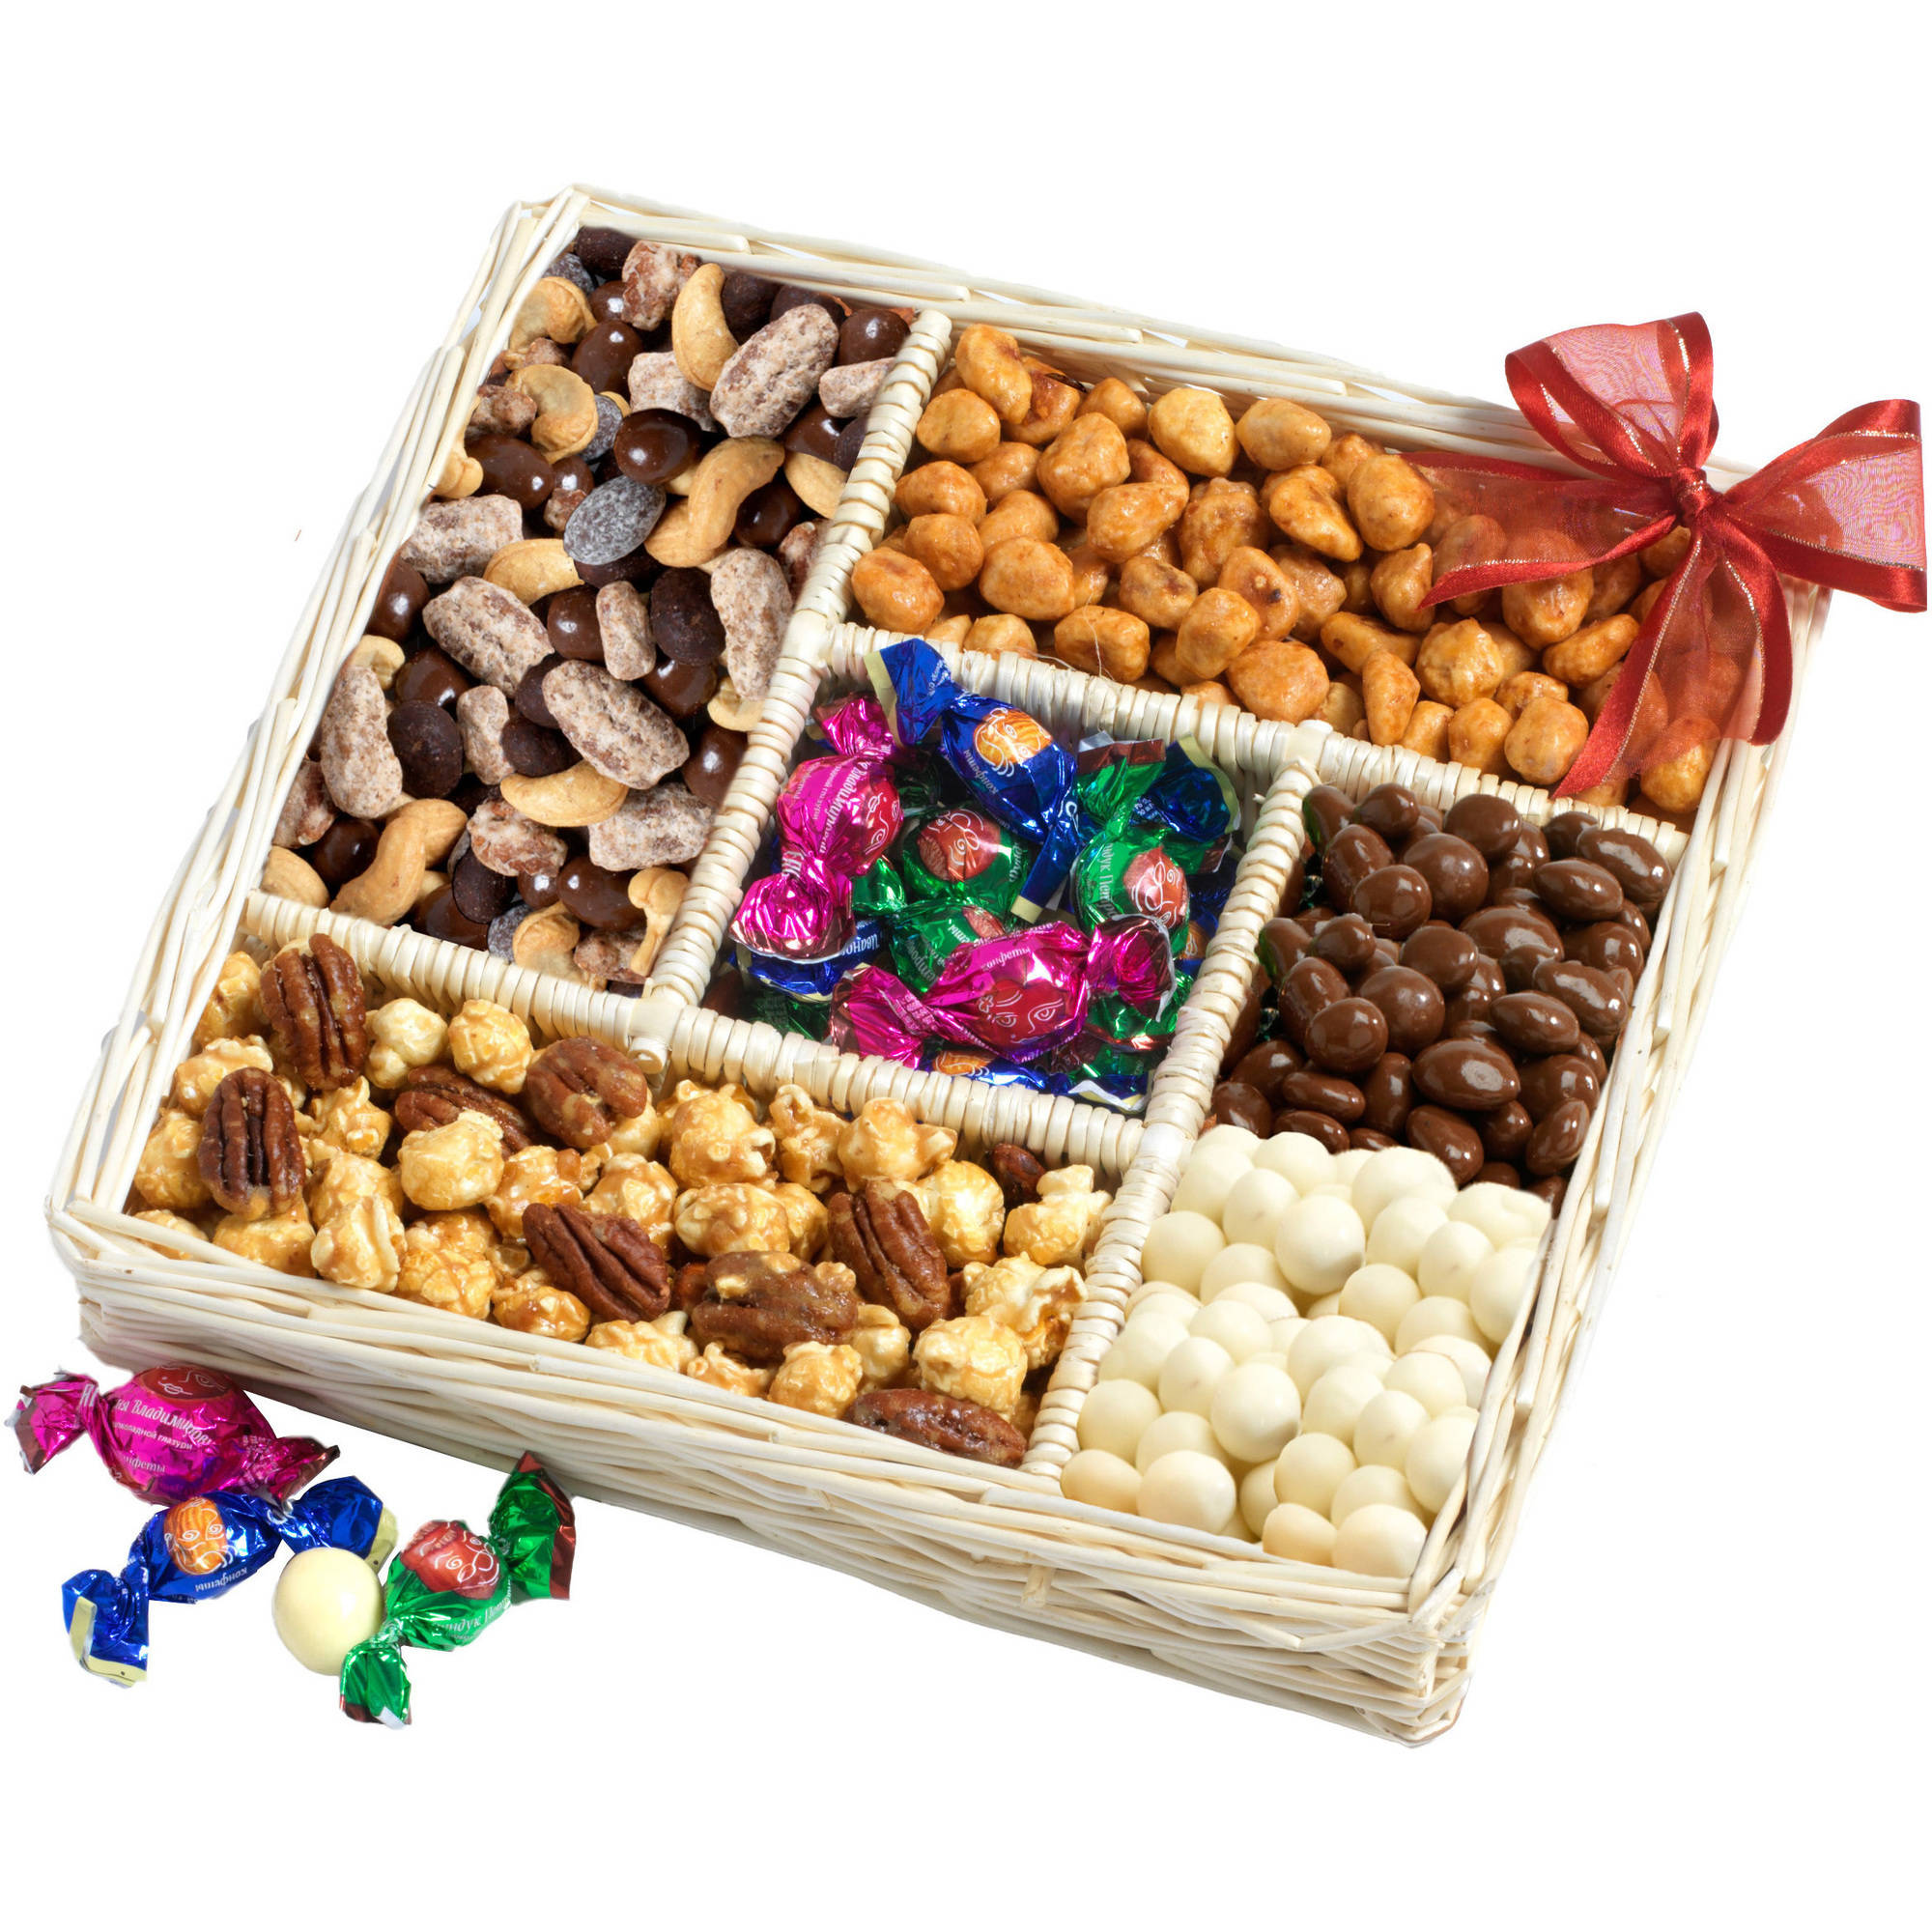 Broadway Basketeers Gourmet Sweet and Savory Nut Gift Basket, 7 pc